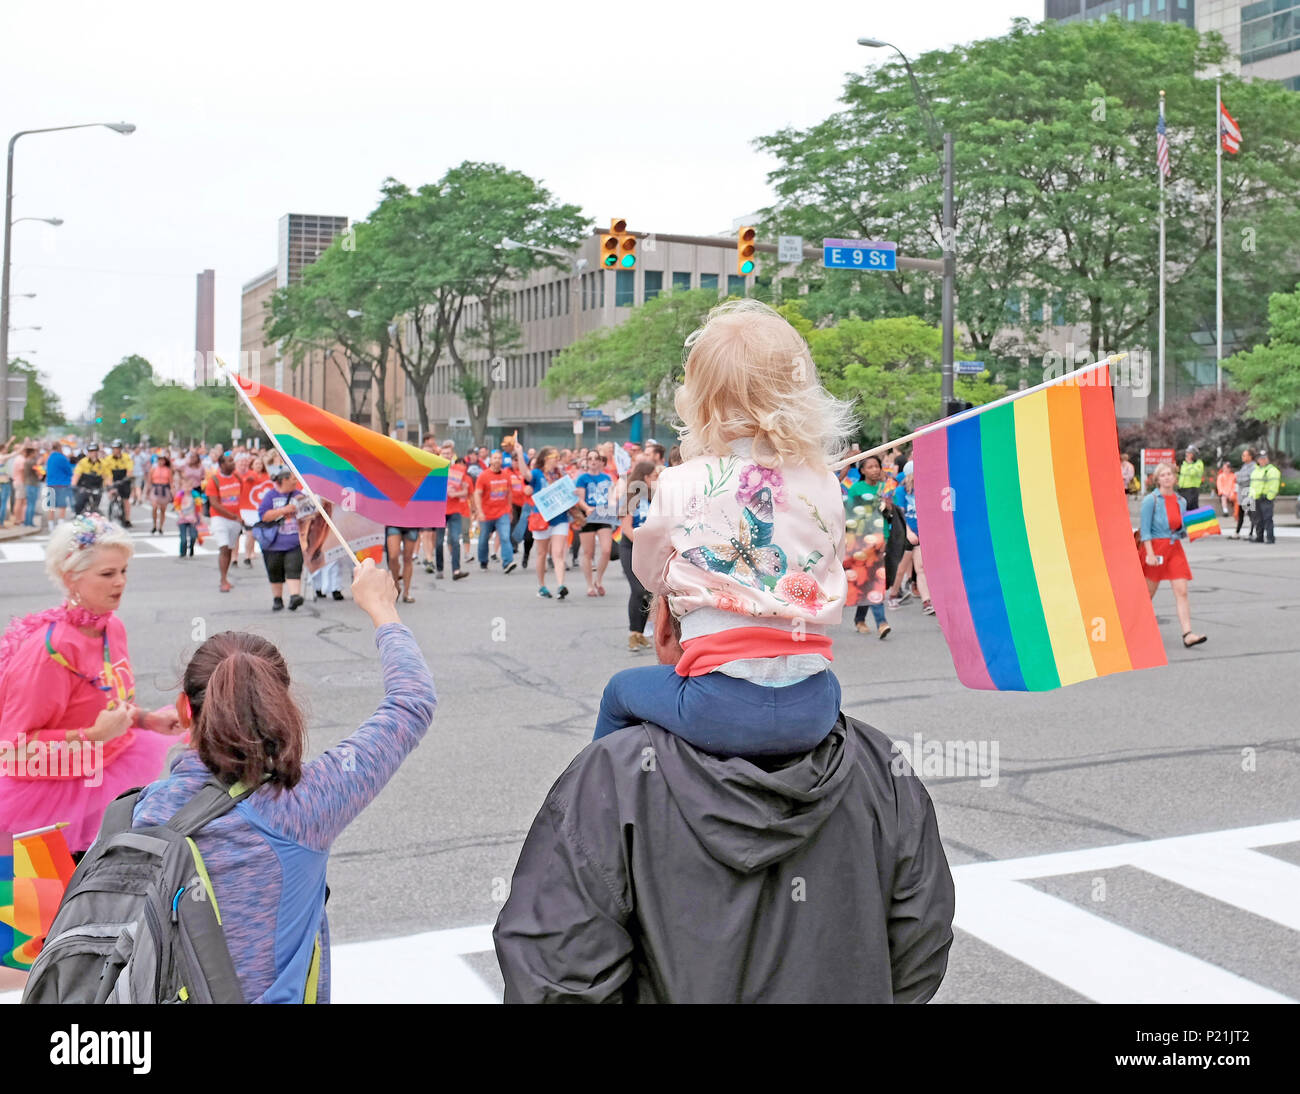 Young girl on dad's shoulders waves a rainbow flag, alongside her mom, as the 2018 Pride parade makes its way through downtown Cleveland, Ohio, USA. - Stock Image